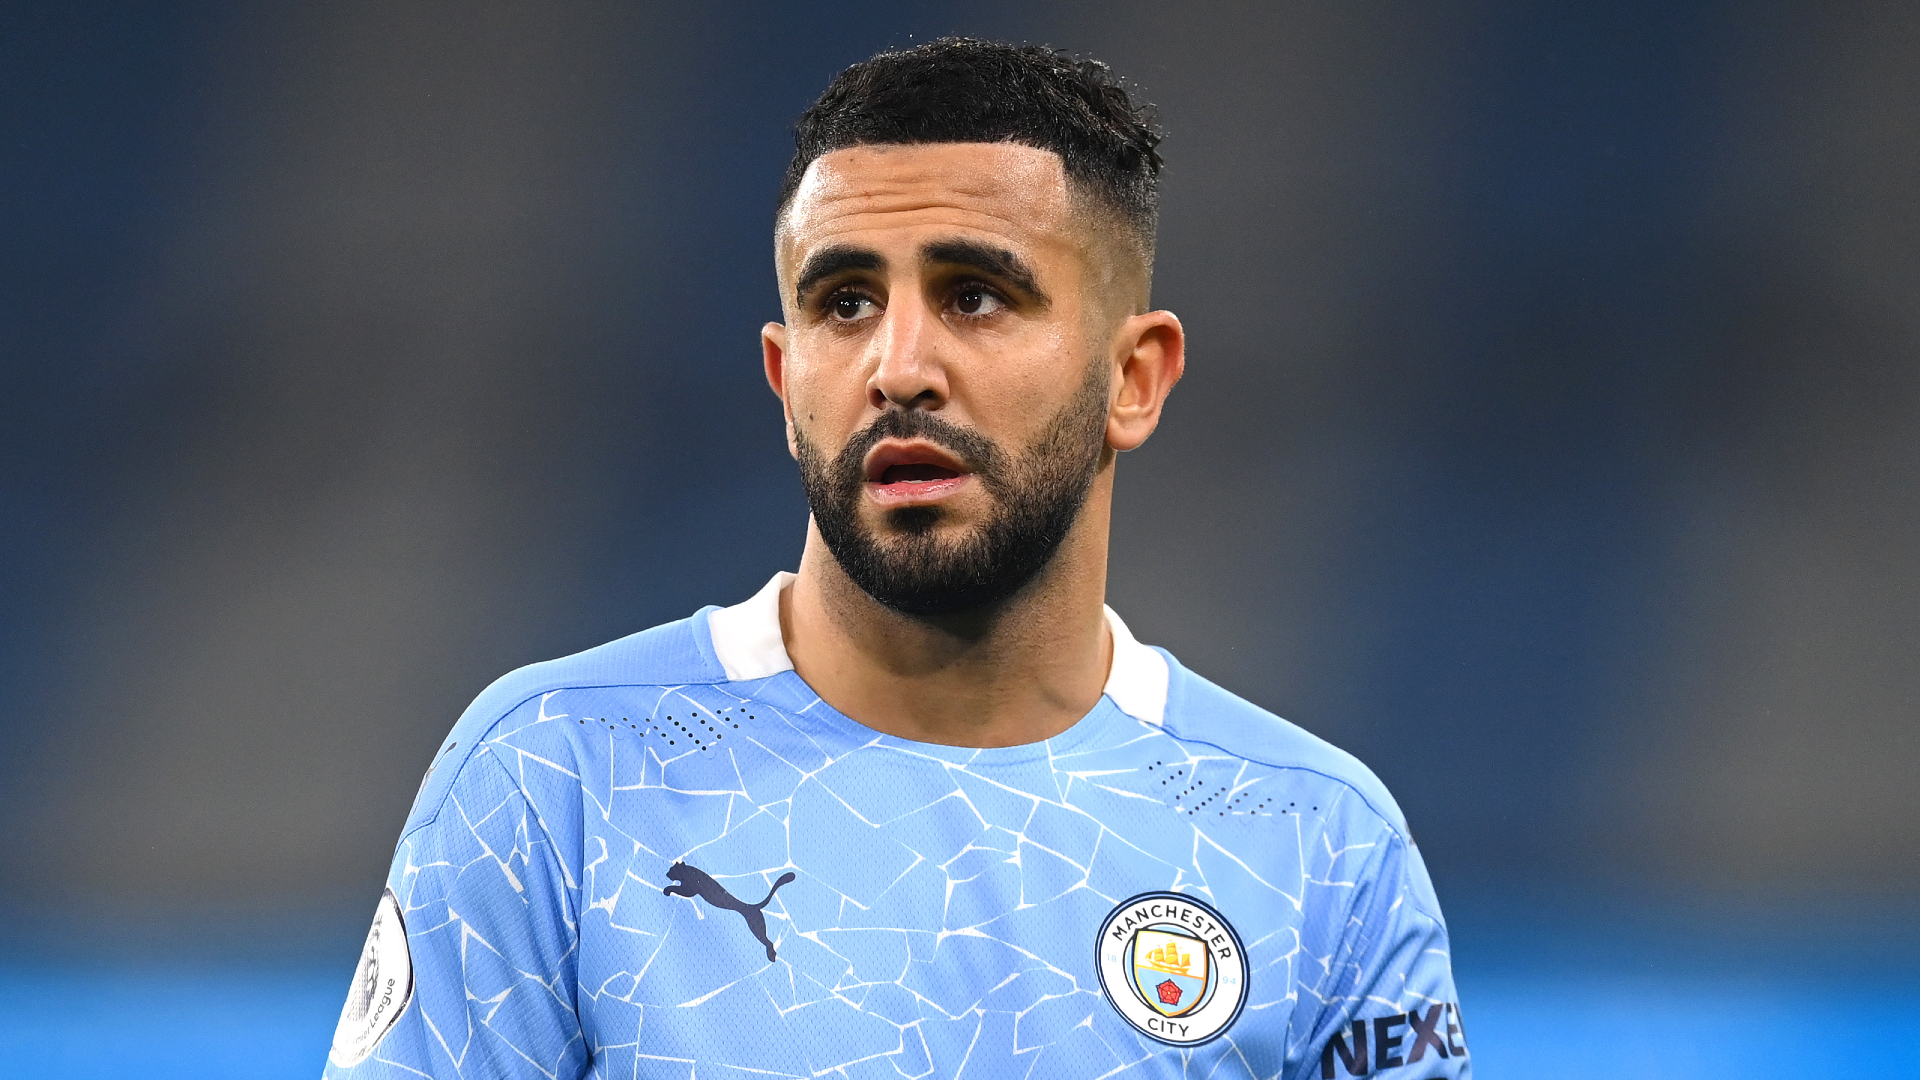 We don't even need to speak to each other' – Mahrez talks up telepathic  link with Man City star Bernardo